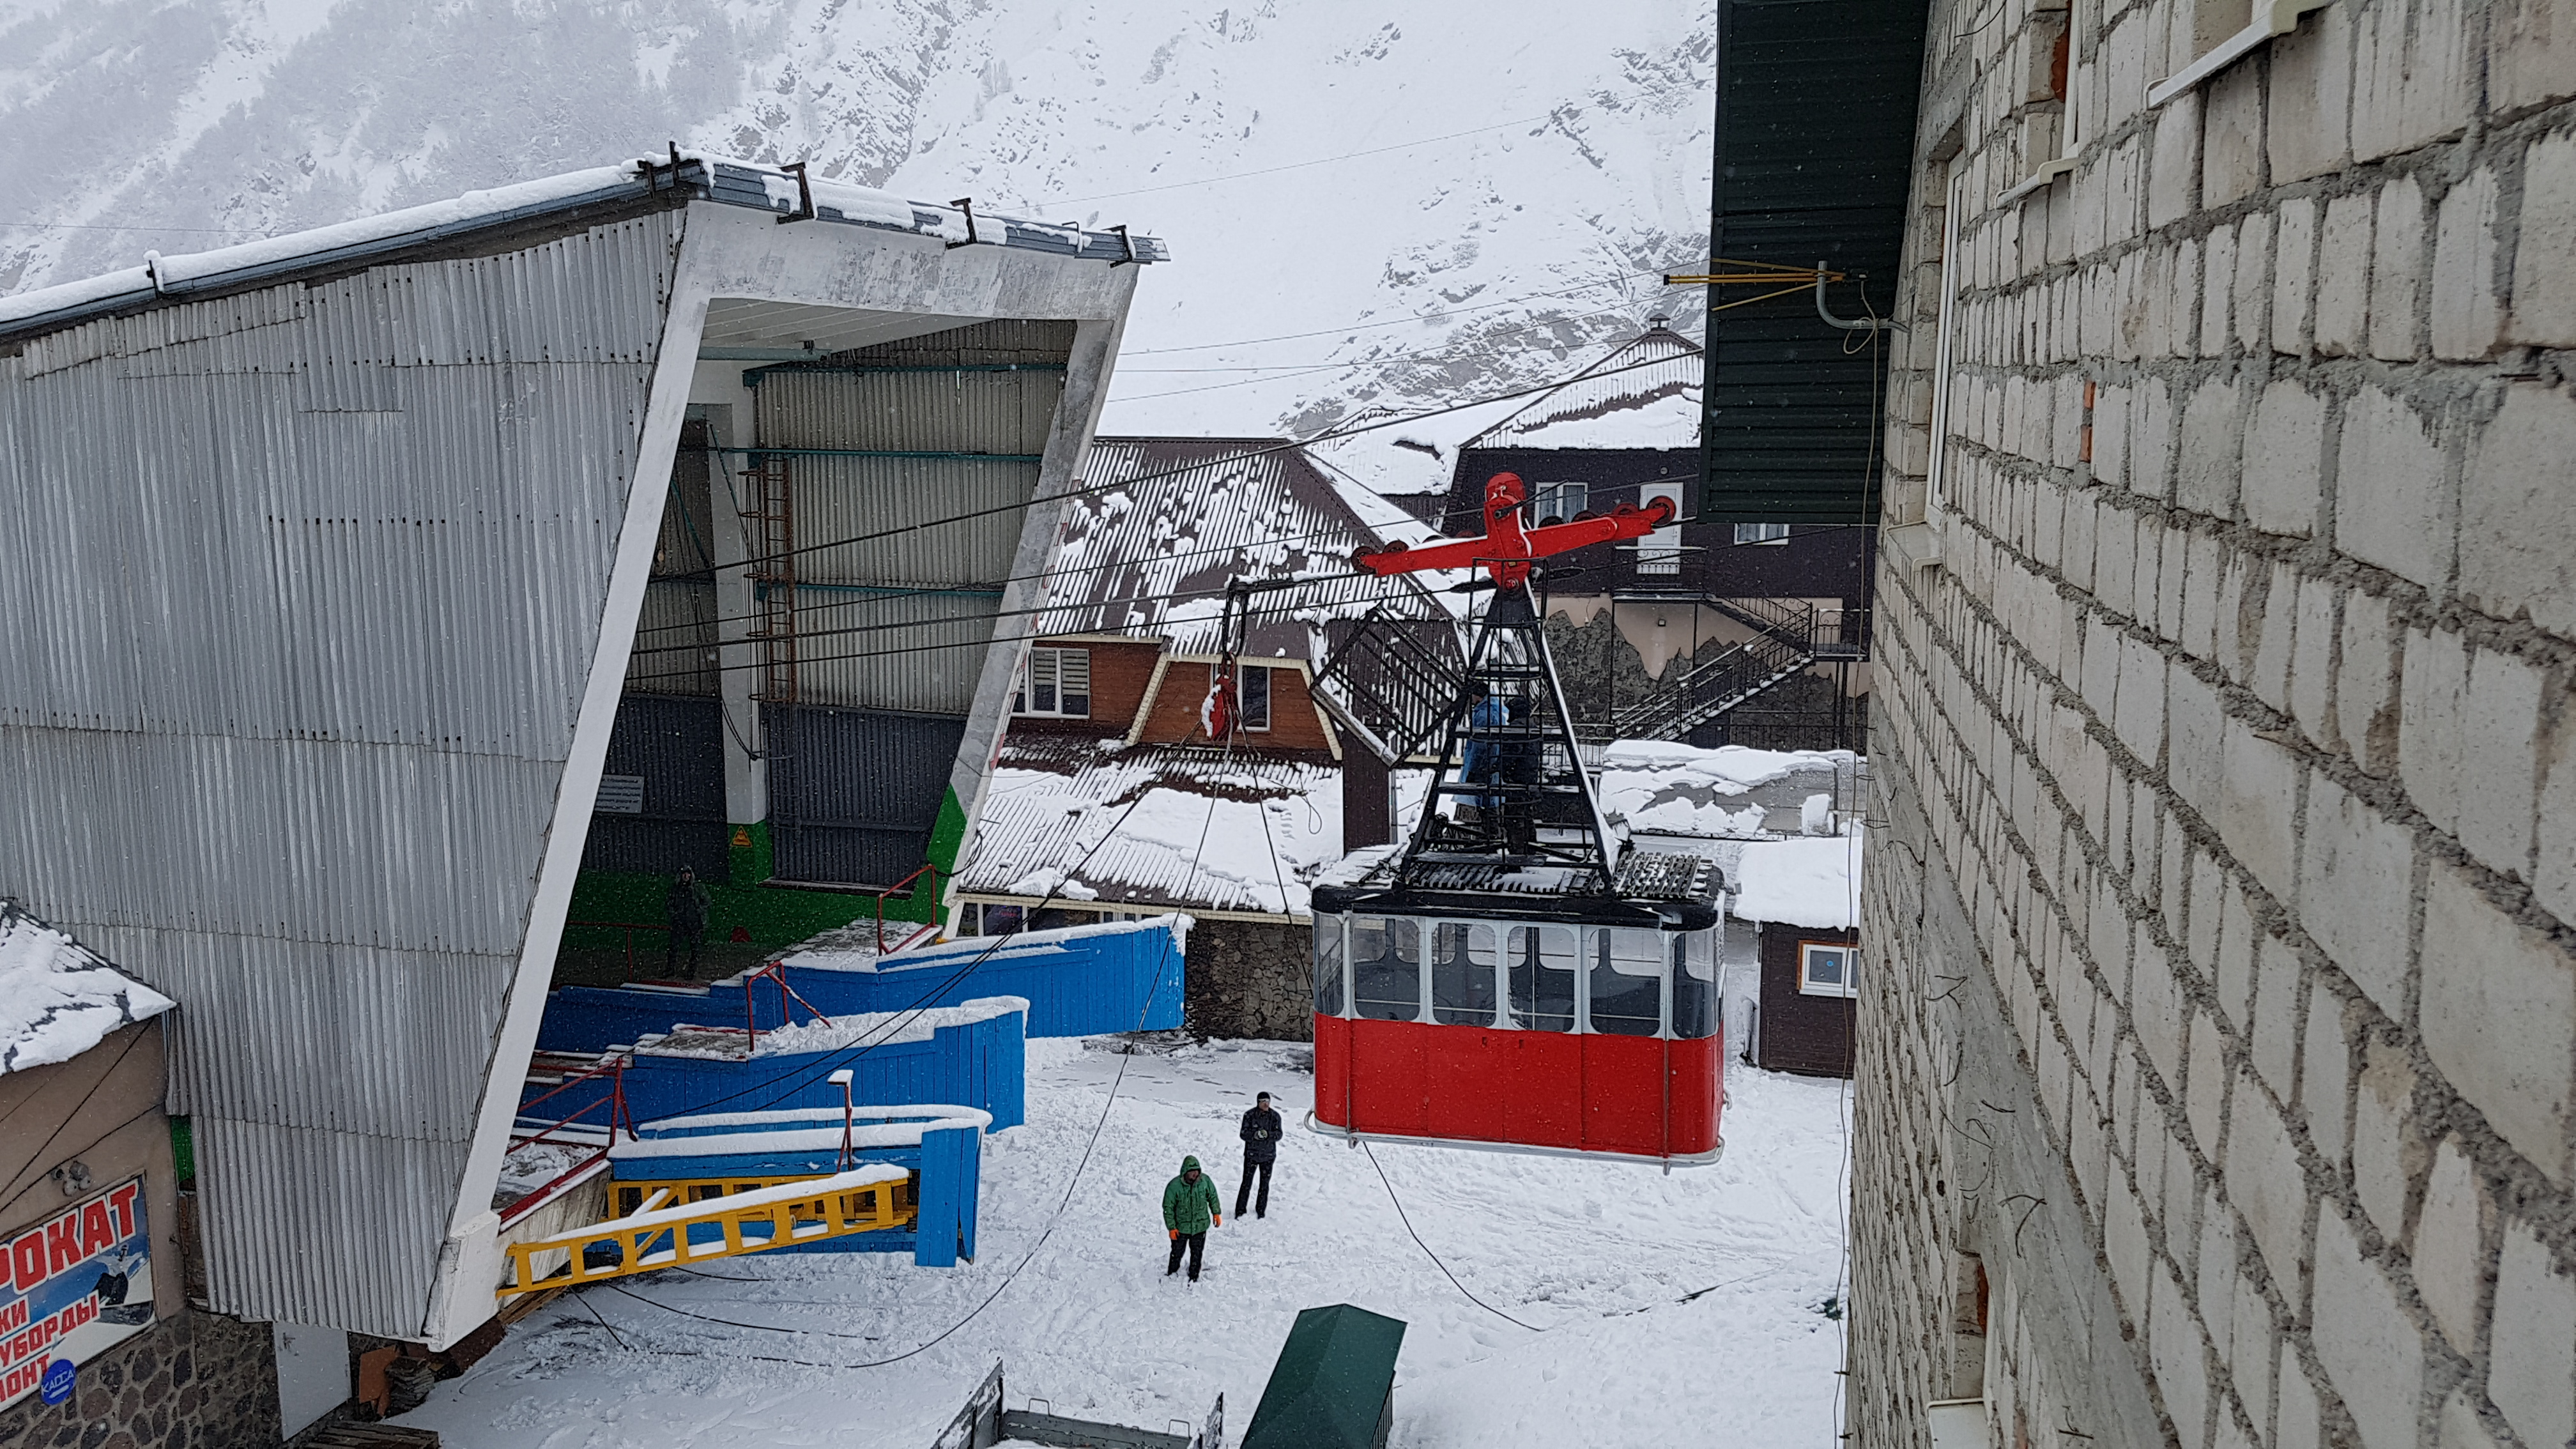 1st cable car of Mt. Elbrus  was stopped for few days., Mt Elbrus